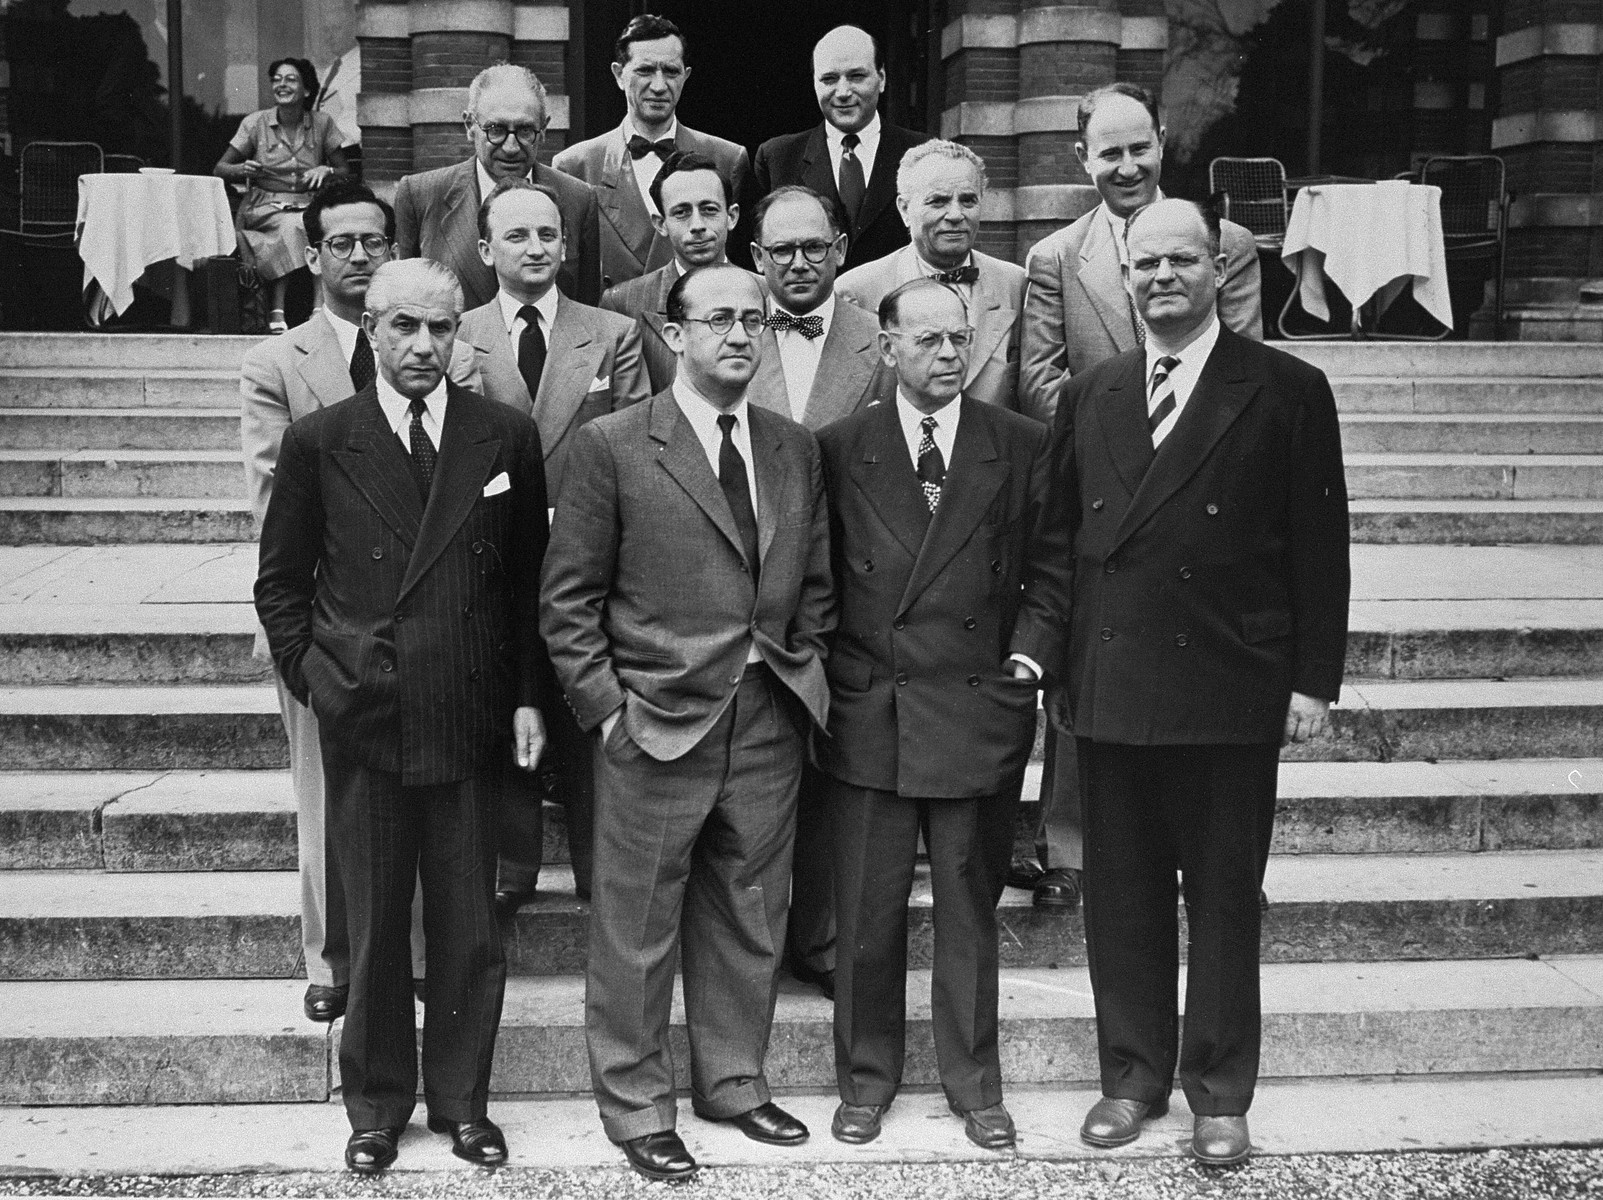 Group portrait of members of the Conference on Jewish Material Claims that came to Luxembourg for the signing of the Reparations Agreement between the German Federal Republic, the State of Israel, and the Conference on Jewish Material Claims.   Among those pictured is Benjamin Ferencz (second row from the front, second from the left).